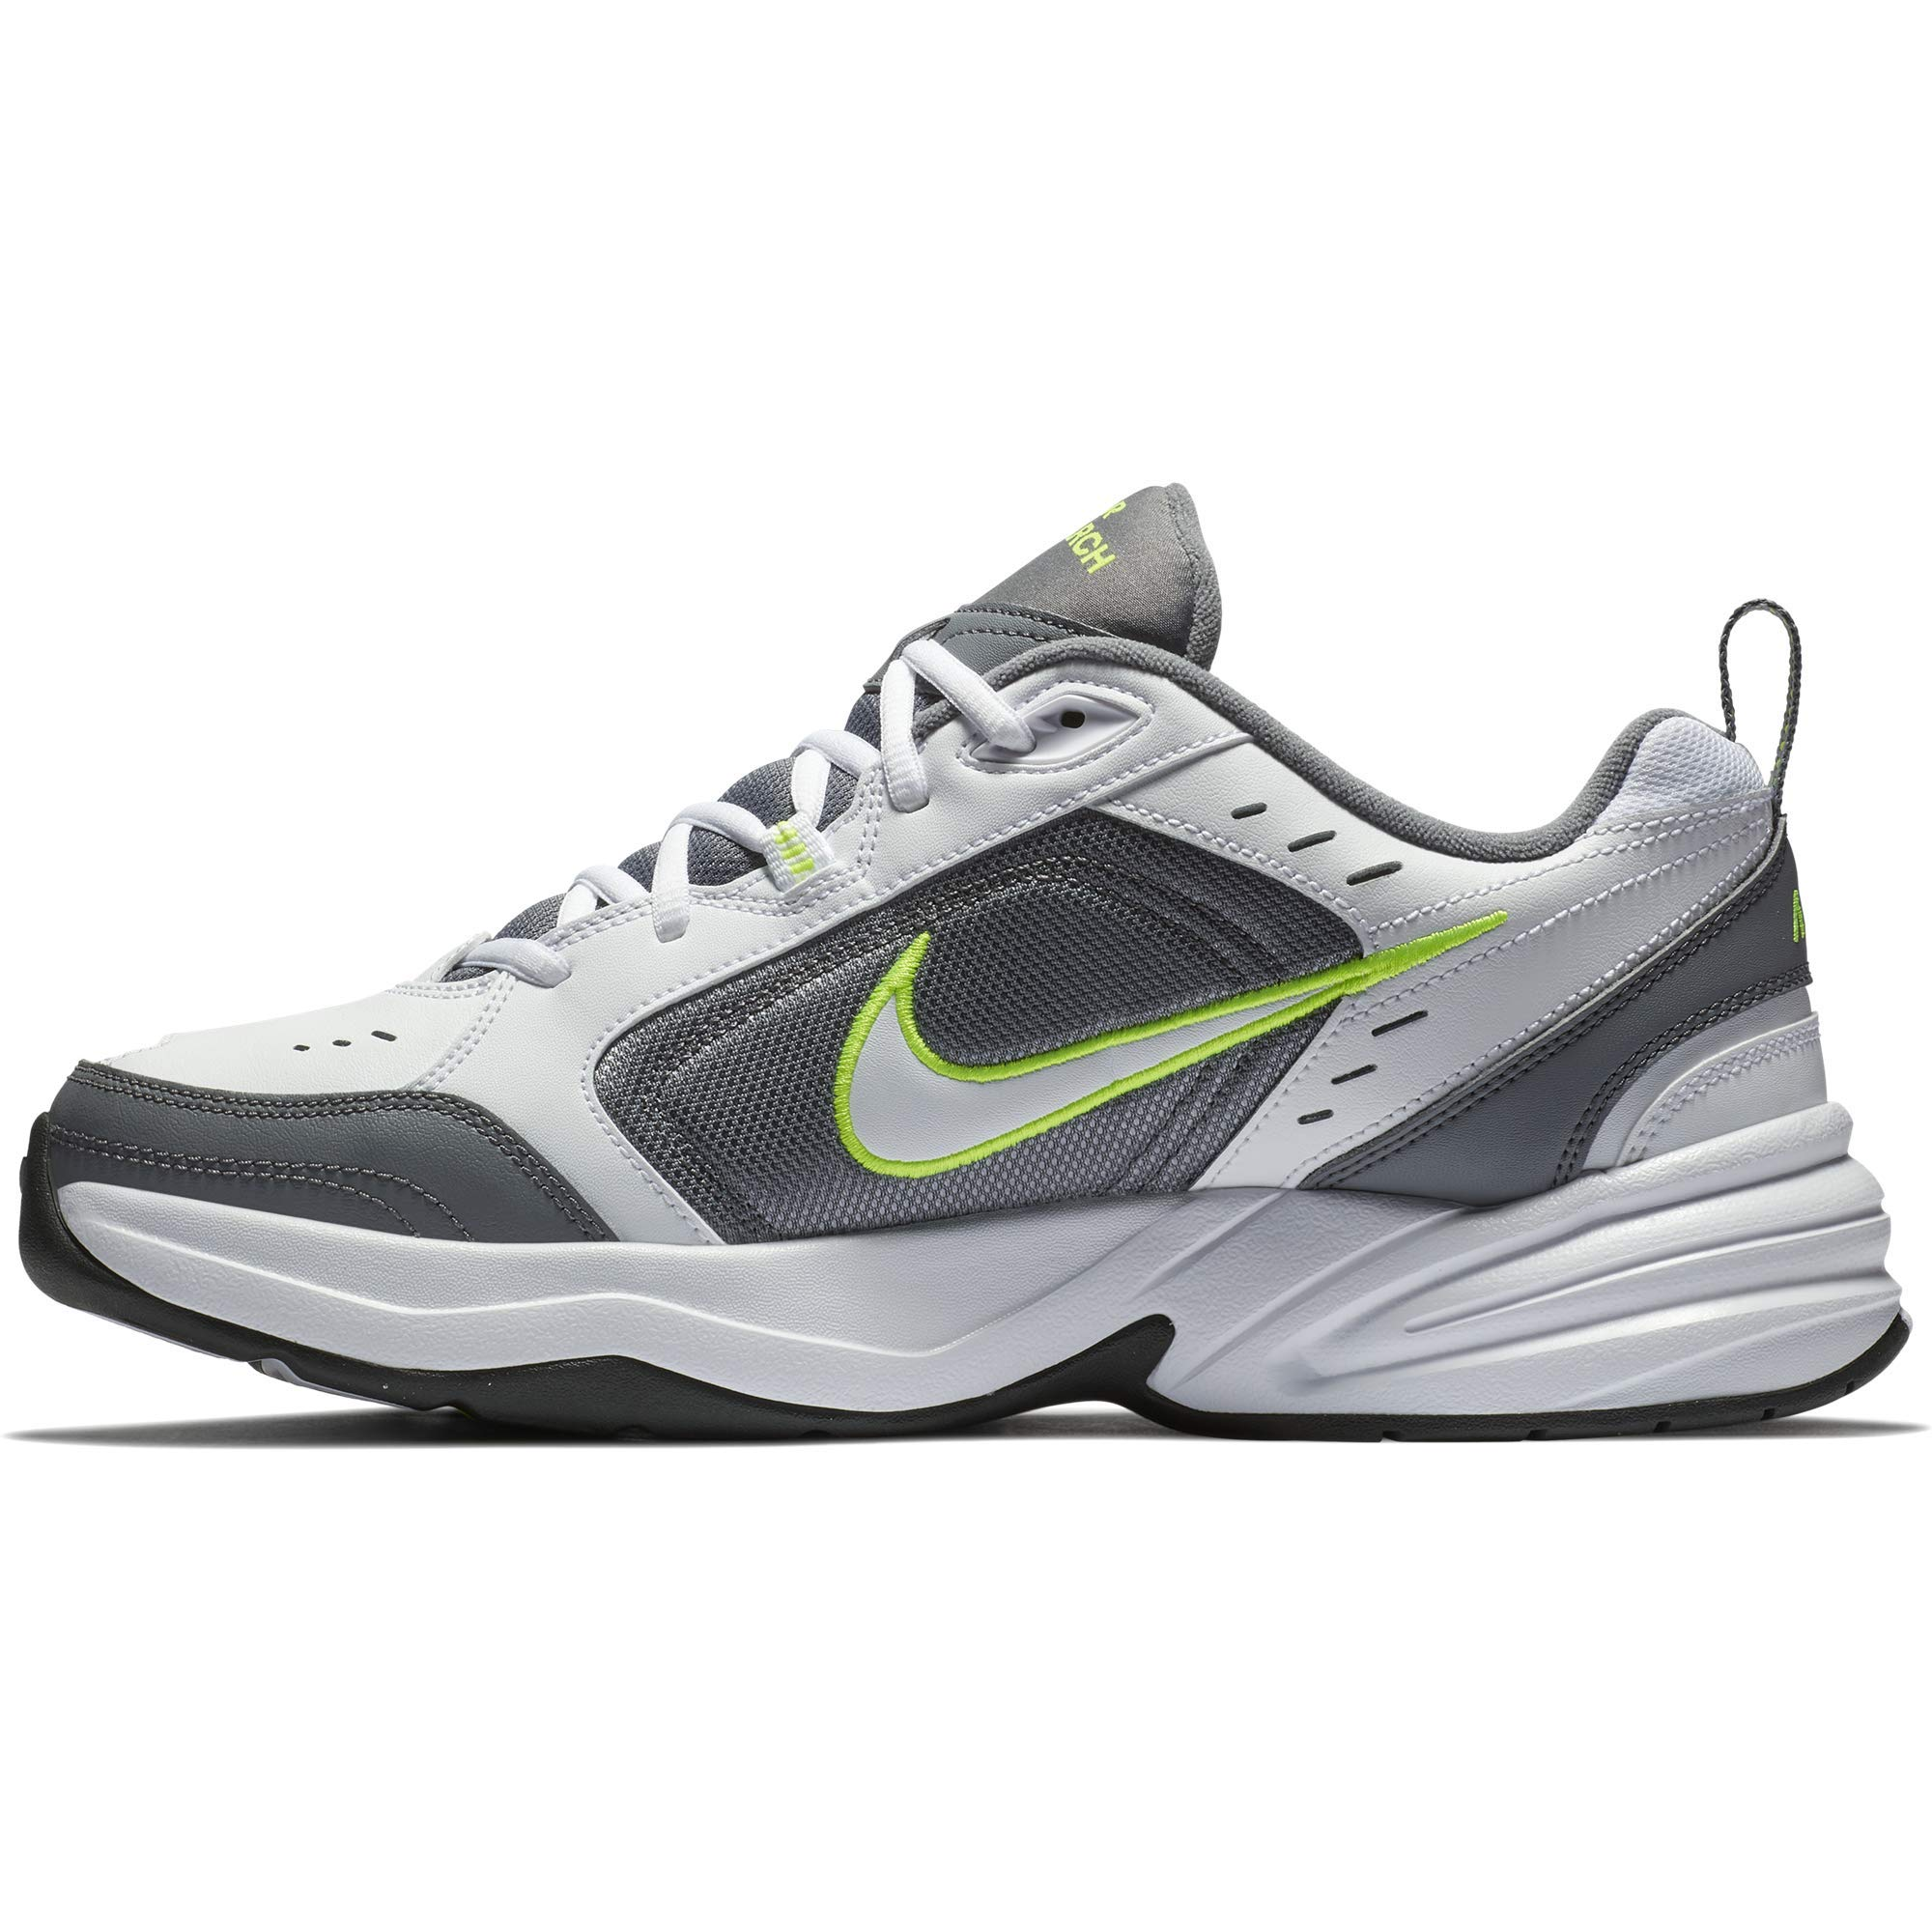 Nike Men's Air Monarch IV Cross Trainer, White-Cool Grey-Anthracite, 6.5 Regular US by Nike (Image #7)